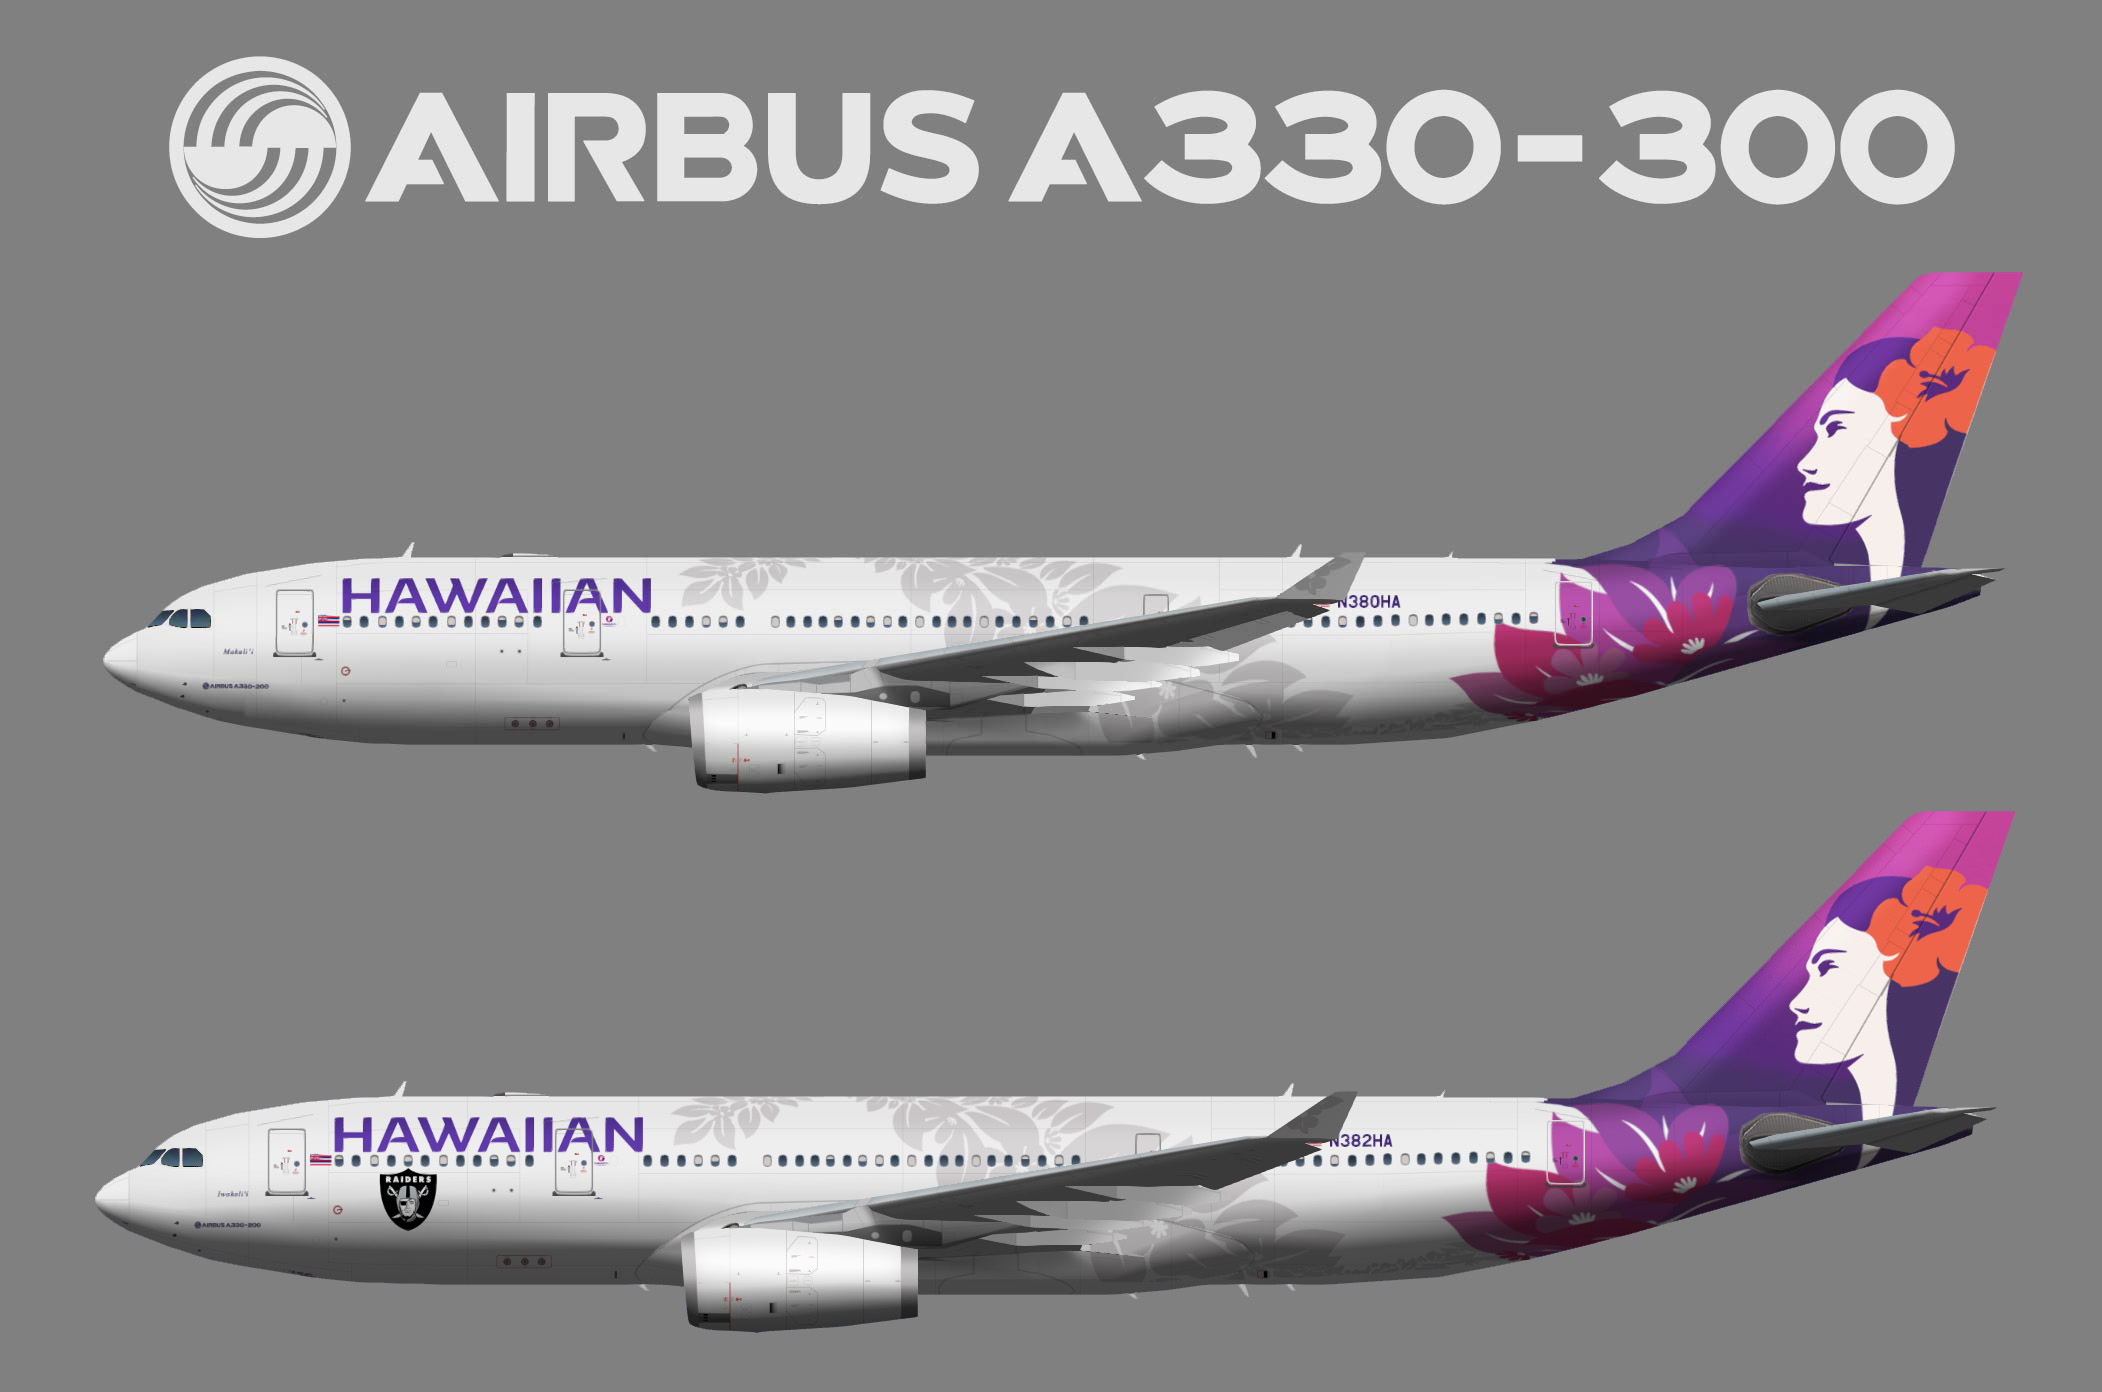 Hawaiian Airlines Airbus A3330-200 New colors